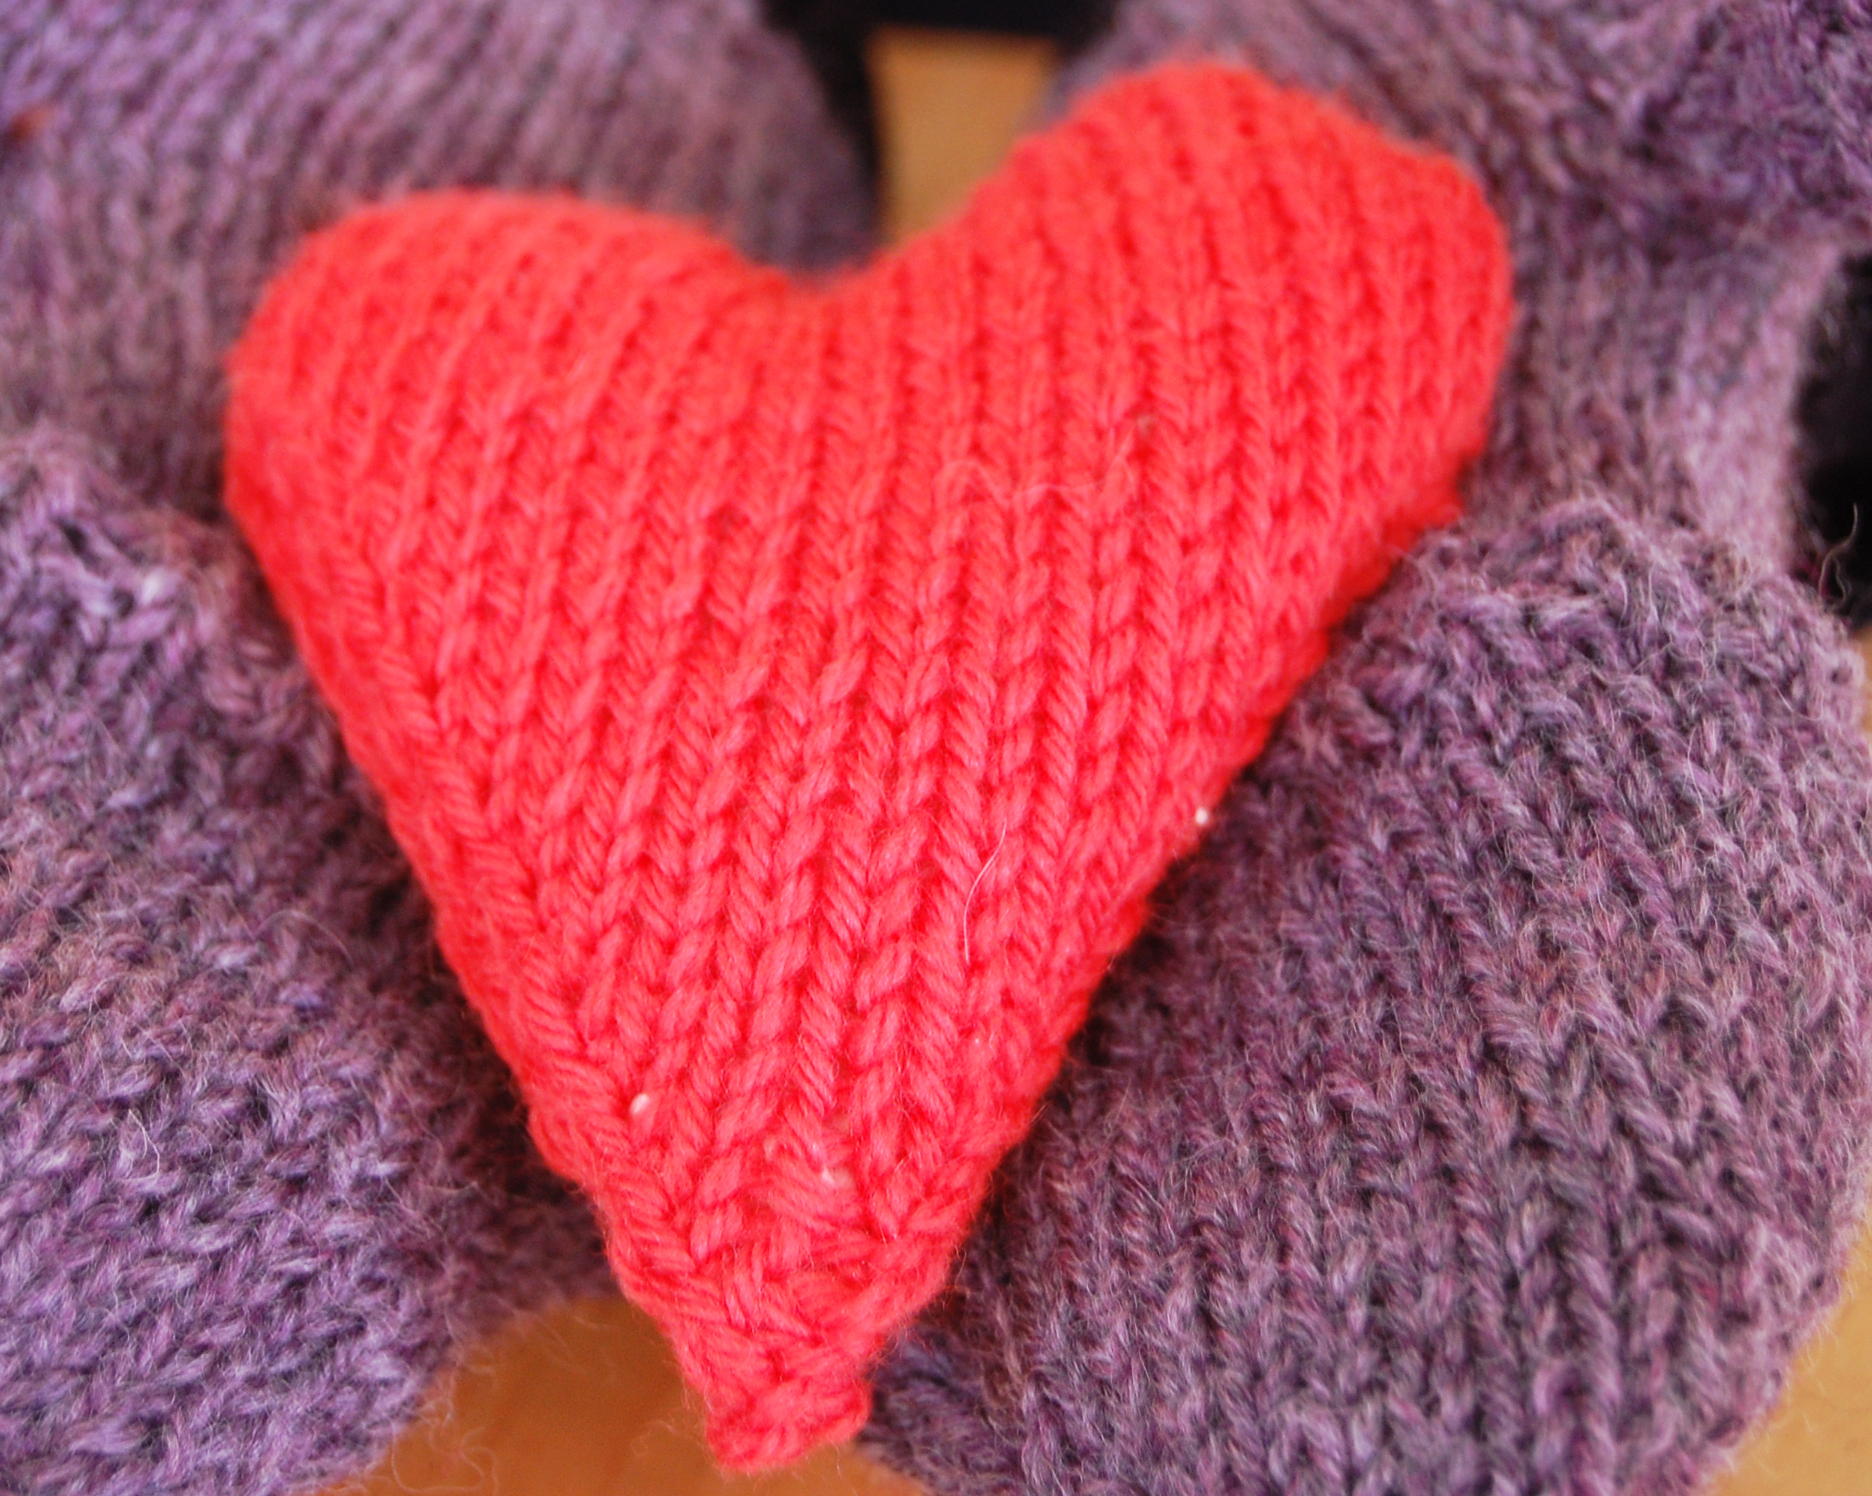 How to Knit a Heart Shaped Pocket Hand Warmer